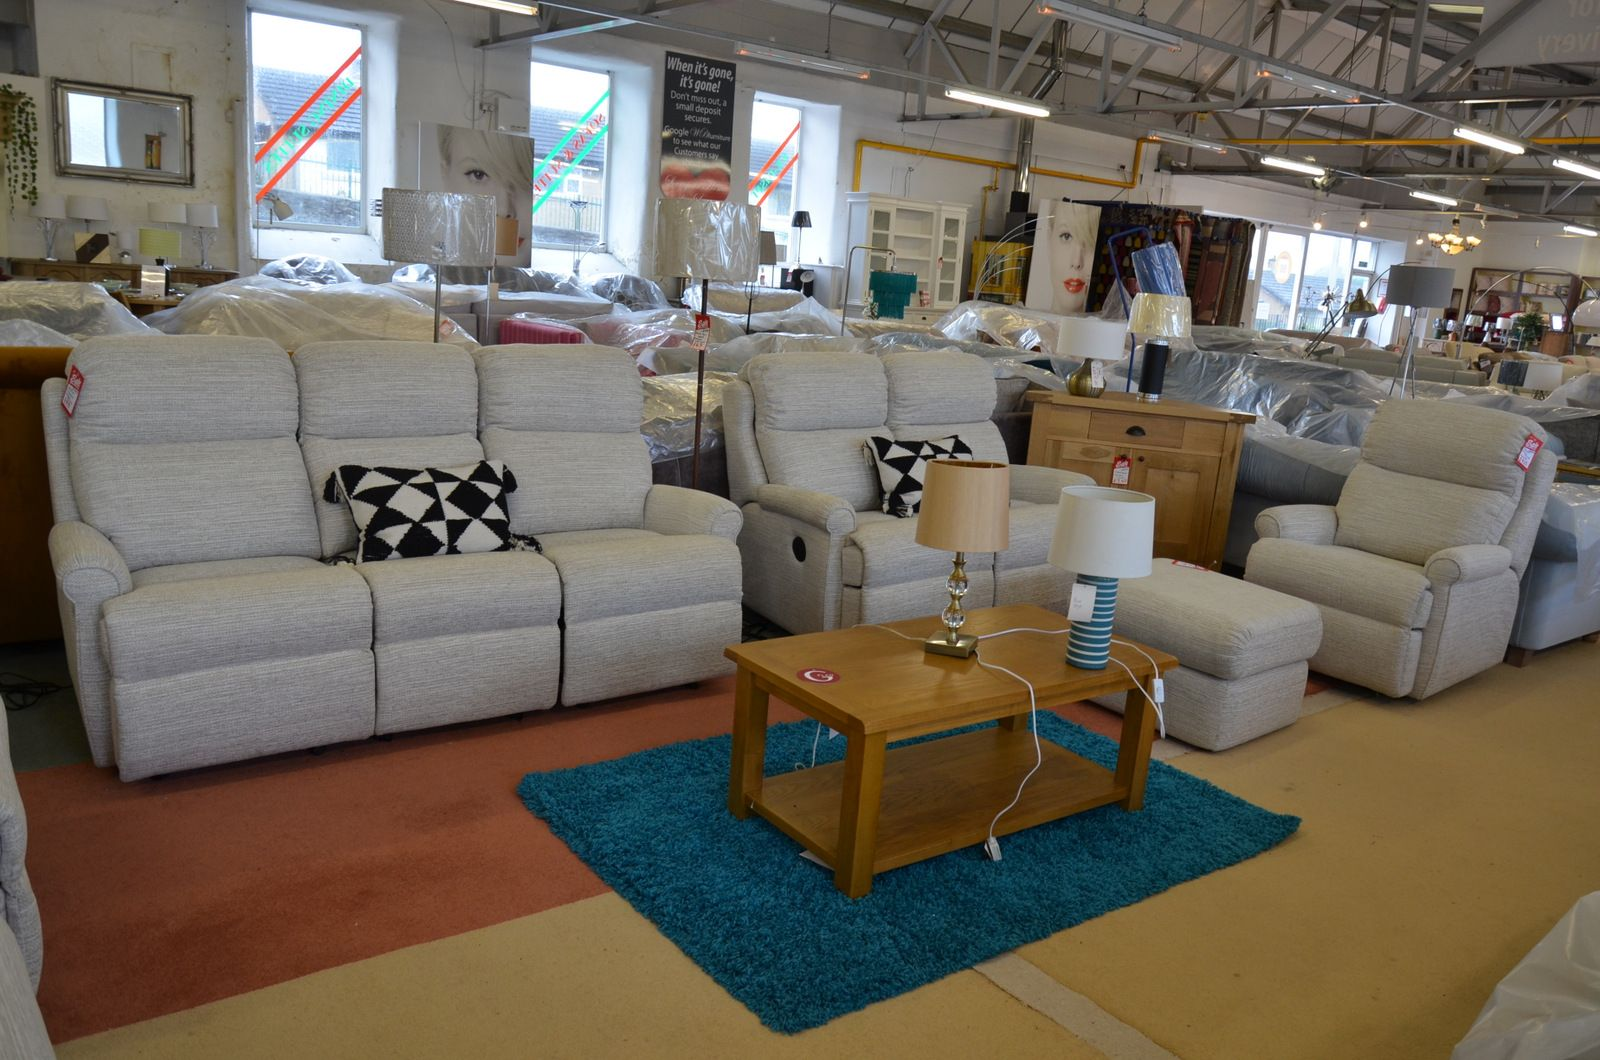 Newbury 3 Piece Suite Two and Three Seater Sofas with Recliners, Manual Chair and Footstool